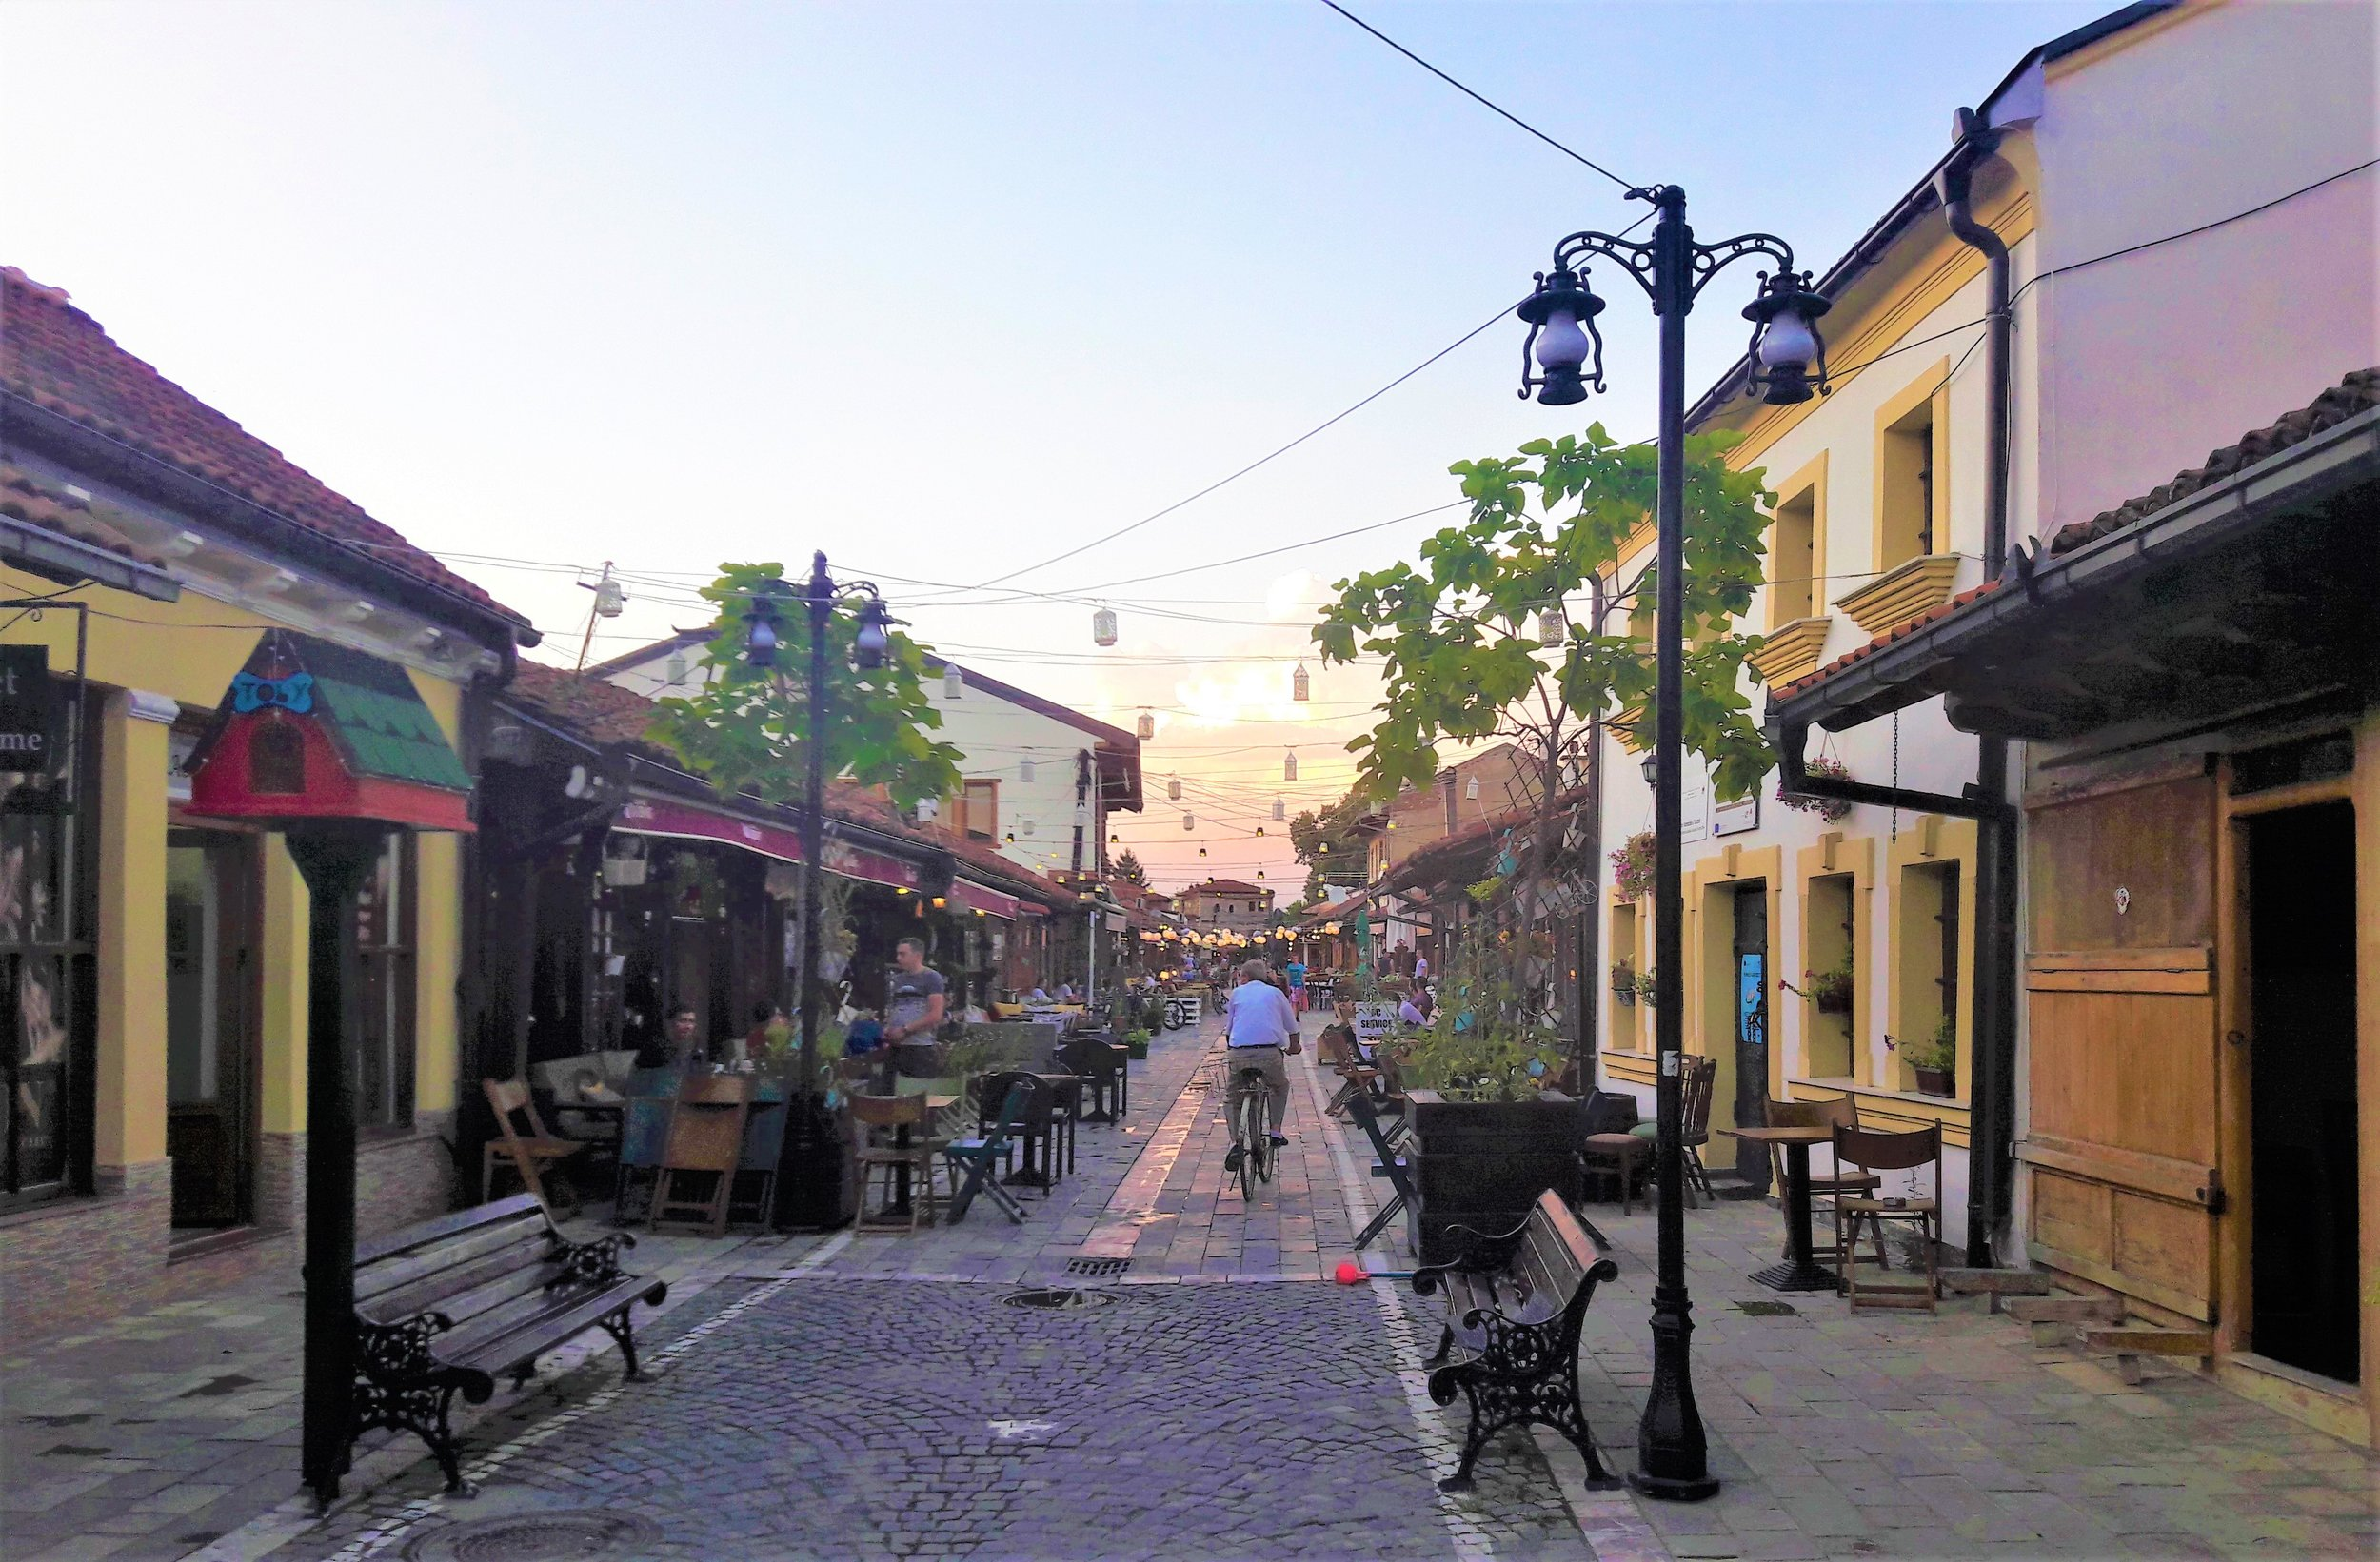 Streets of Gjakova, Kosovo one of the best places to visit in kosovo